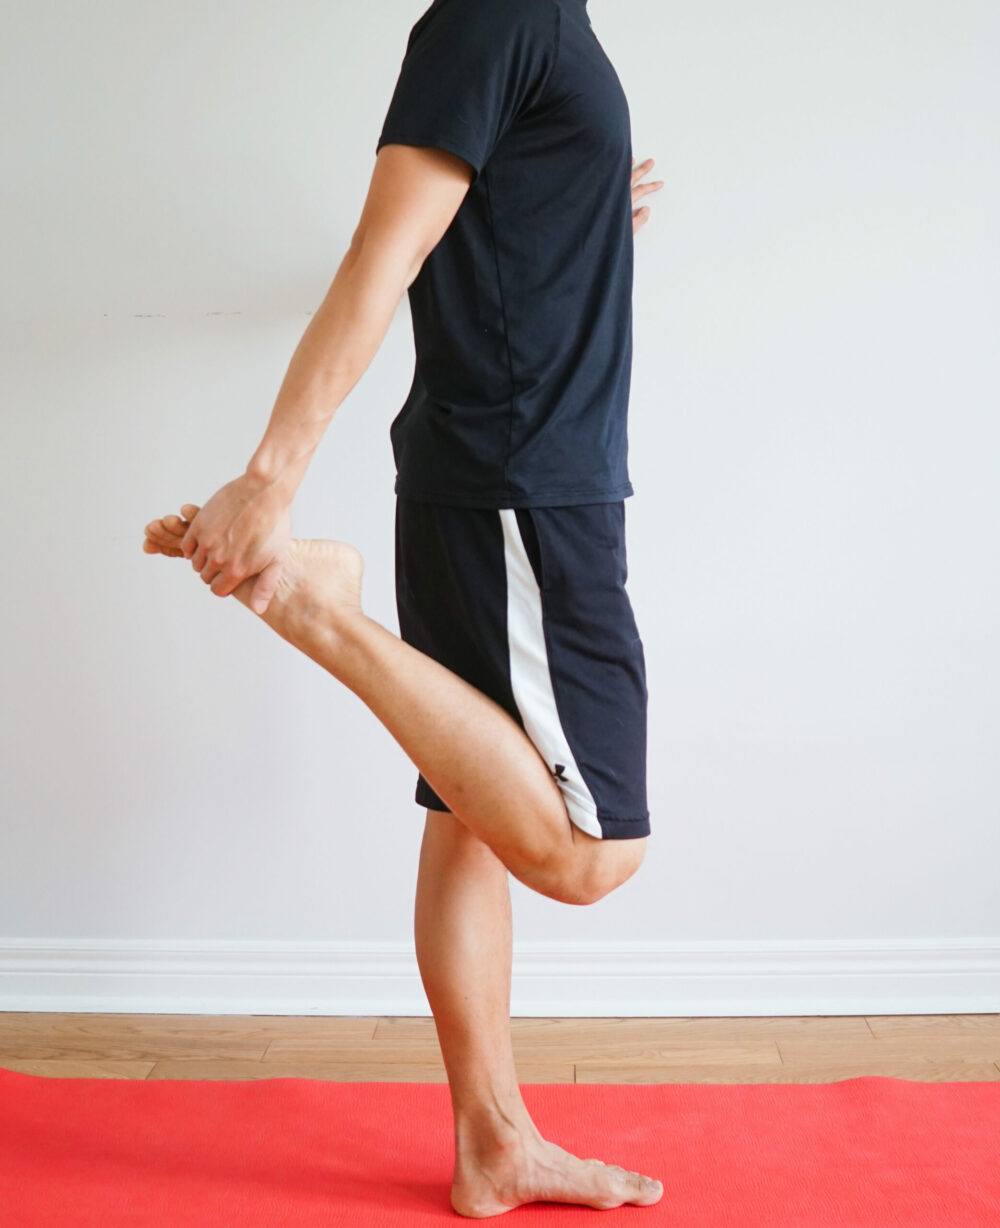 quadriceps stretch in standing